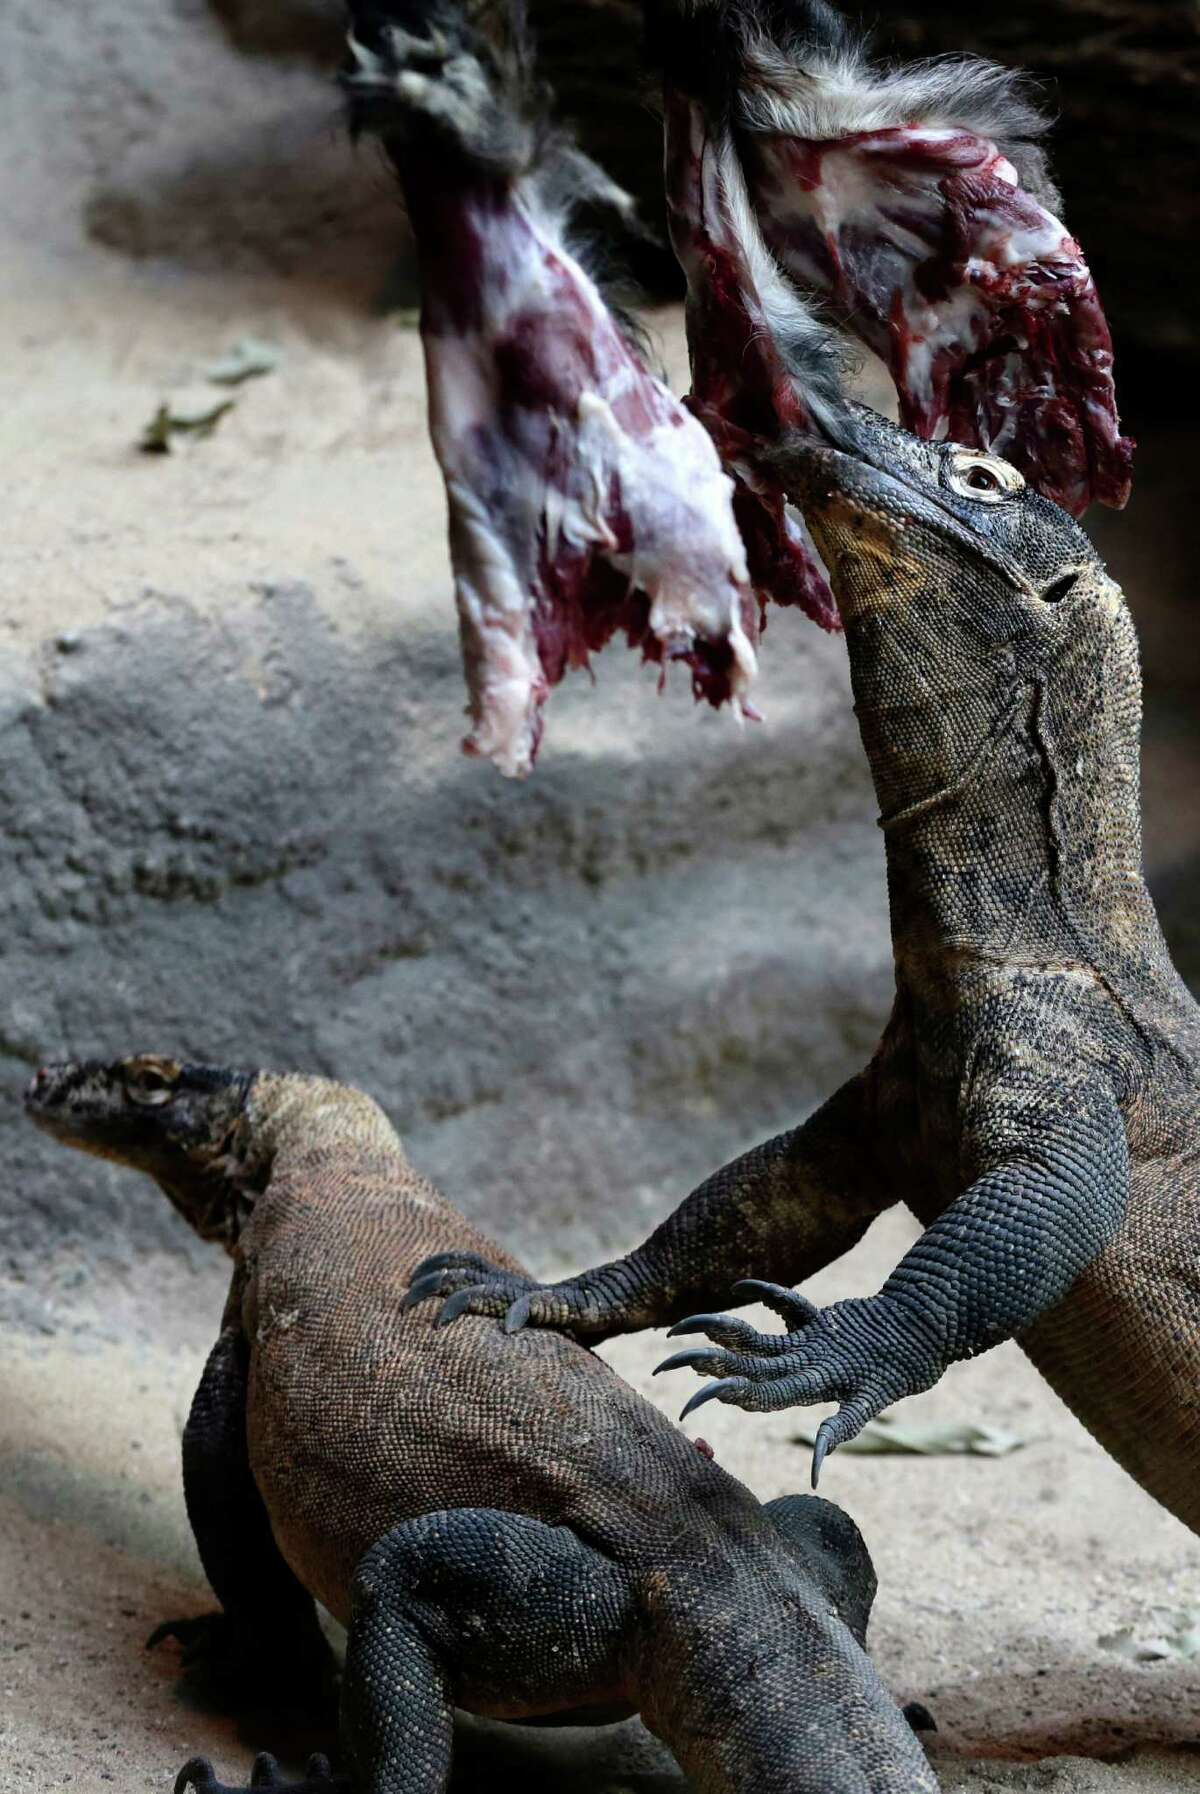 Komodo dragons feed on meat at an enclosure in Prague's Zoo, Czech Republic, Saturday, Jan. 16, 2016.